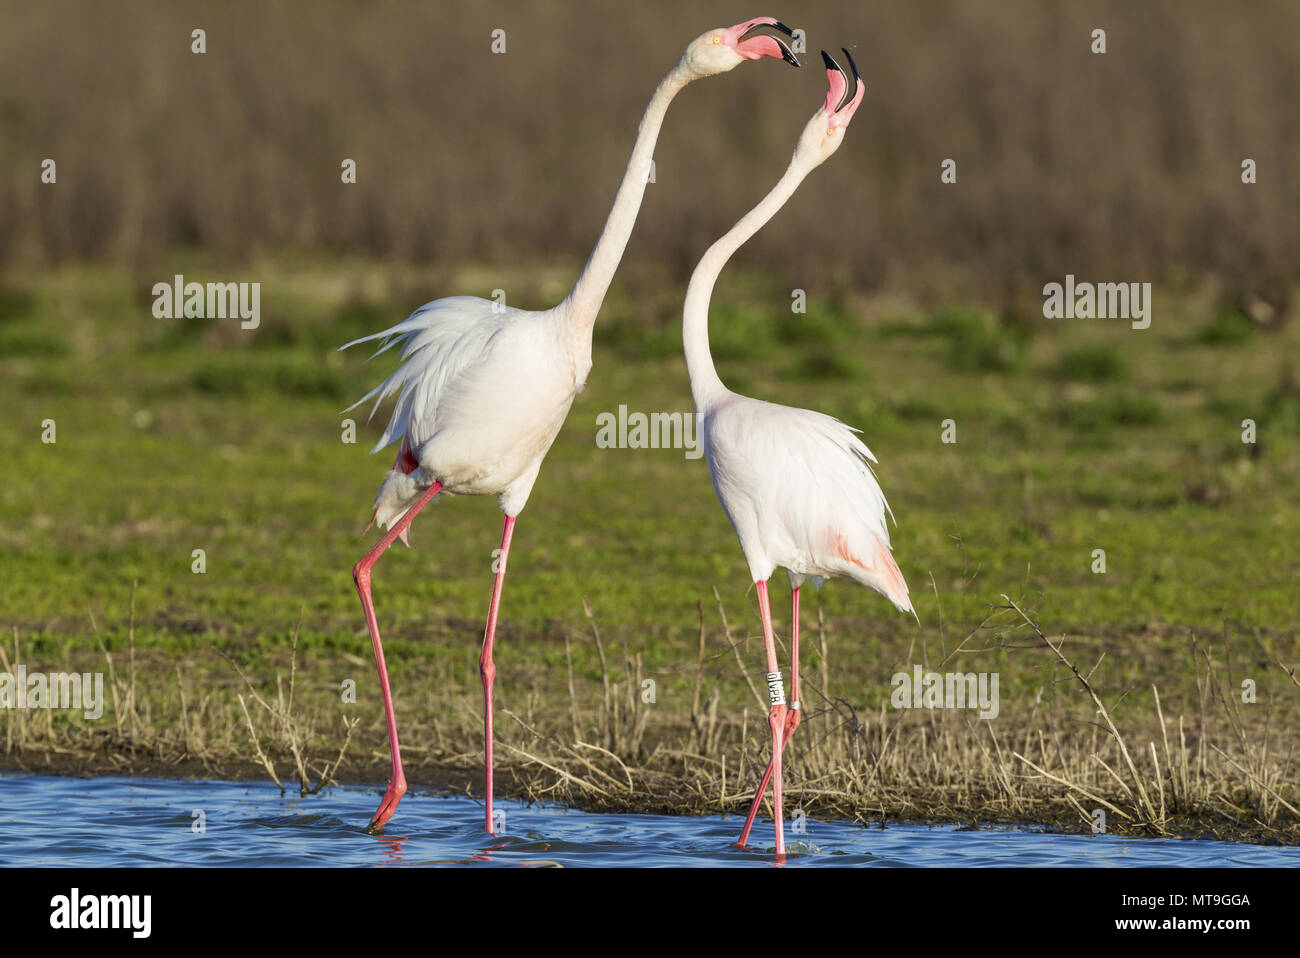 Greater Flamingo (Phoenicopterus roseus). Quarrel between two birds at the Laguna de Fuente de Piedra near the town of Antequera. This is the largest natural lake in Andalusia and Europe's only inland breeding ground for this species. Malaga province, Andalusia, Spain. - Stock Image